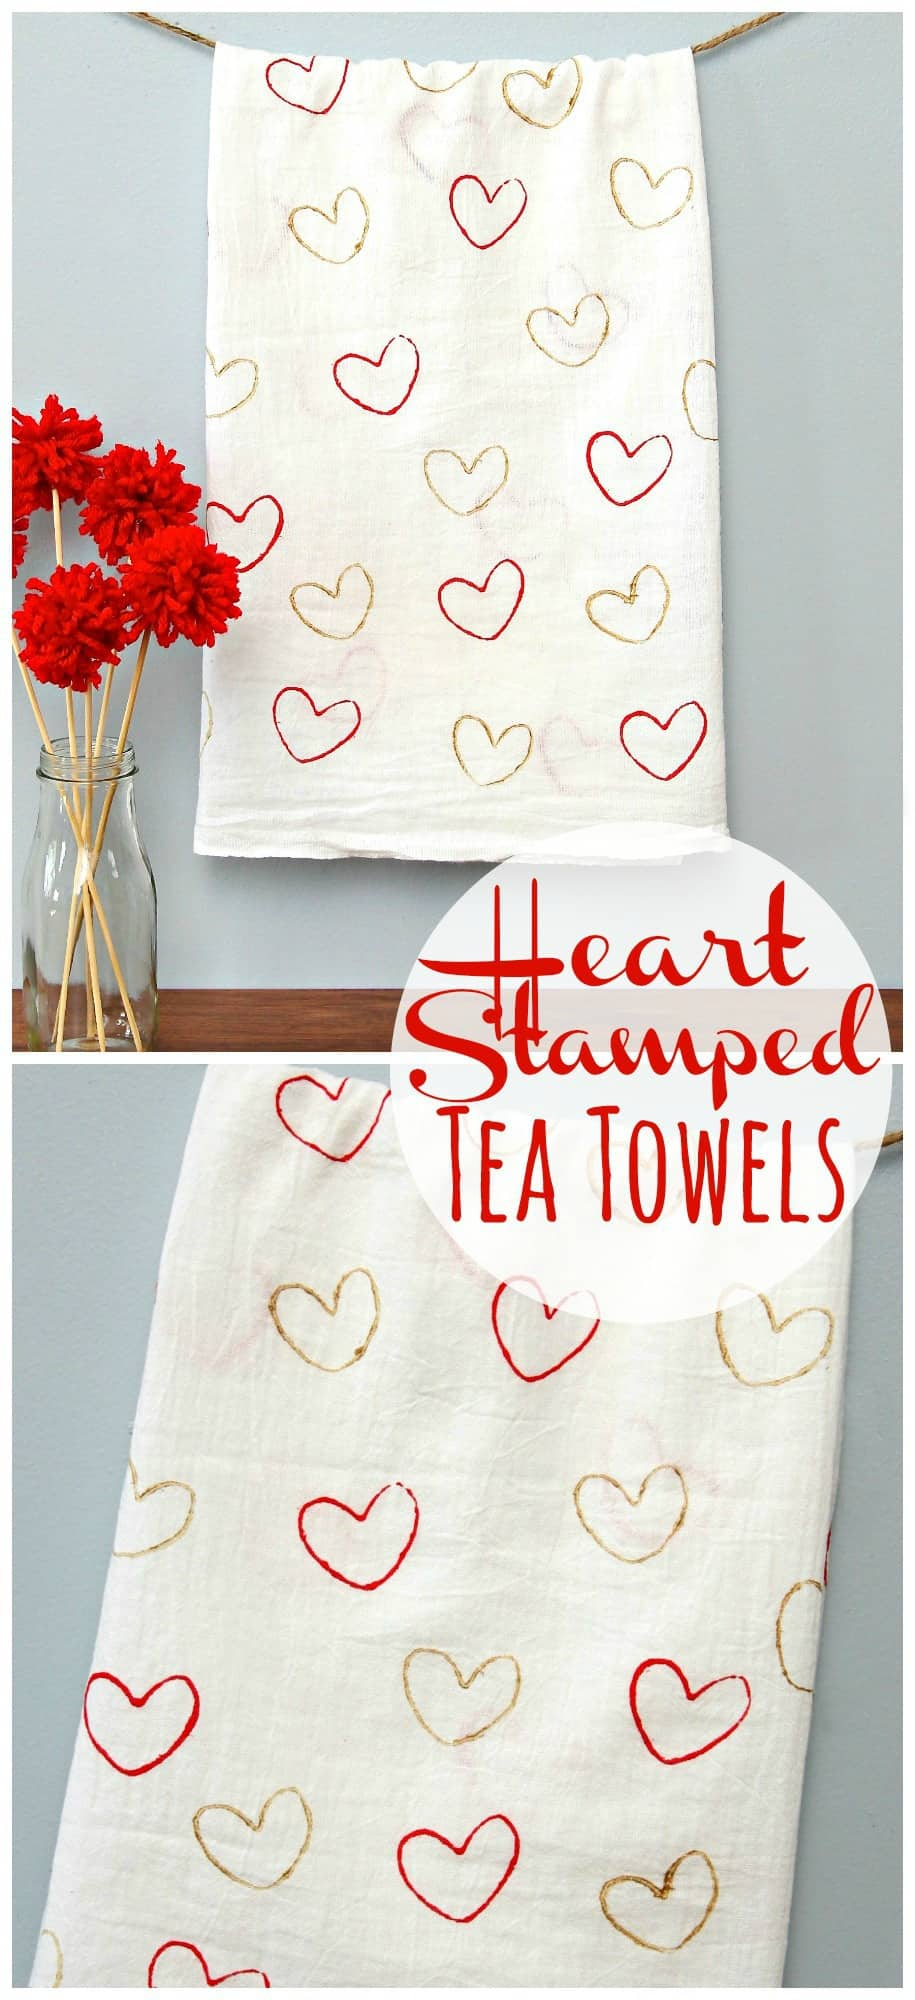 Heart Stamped Tea Towels Pinterest